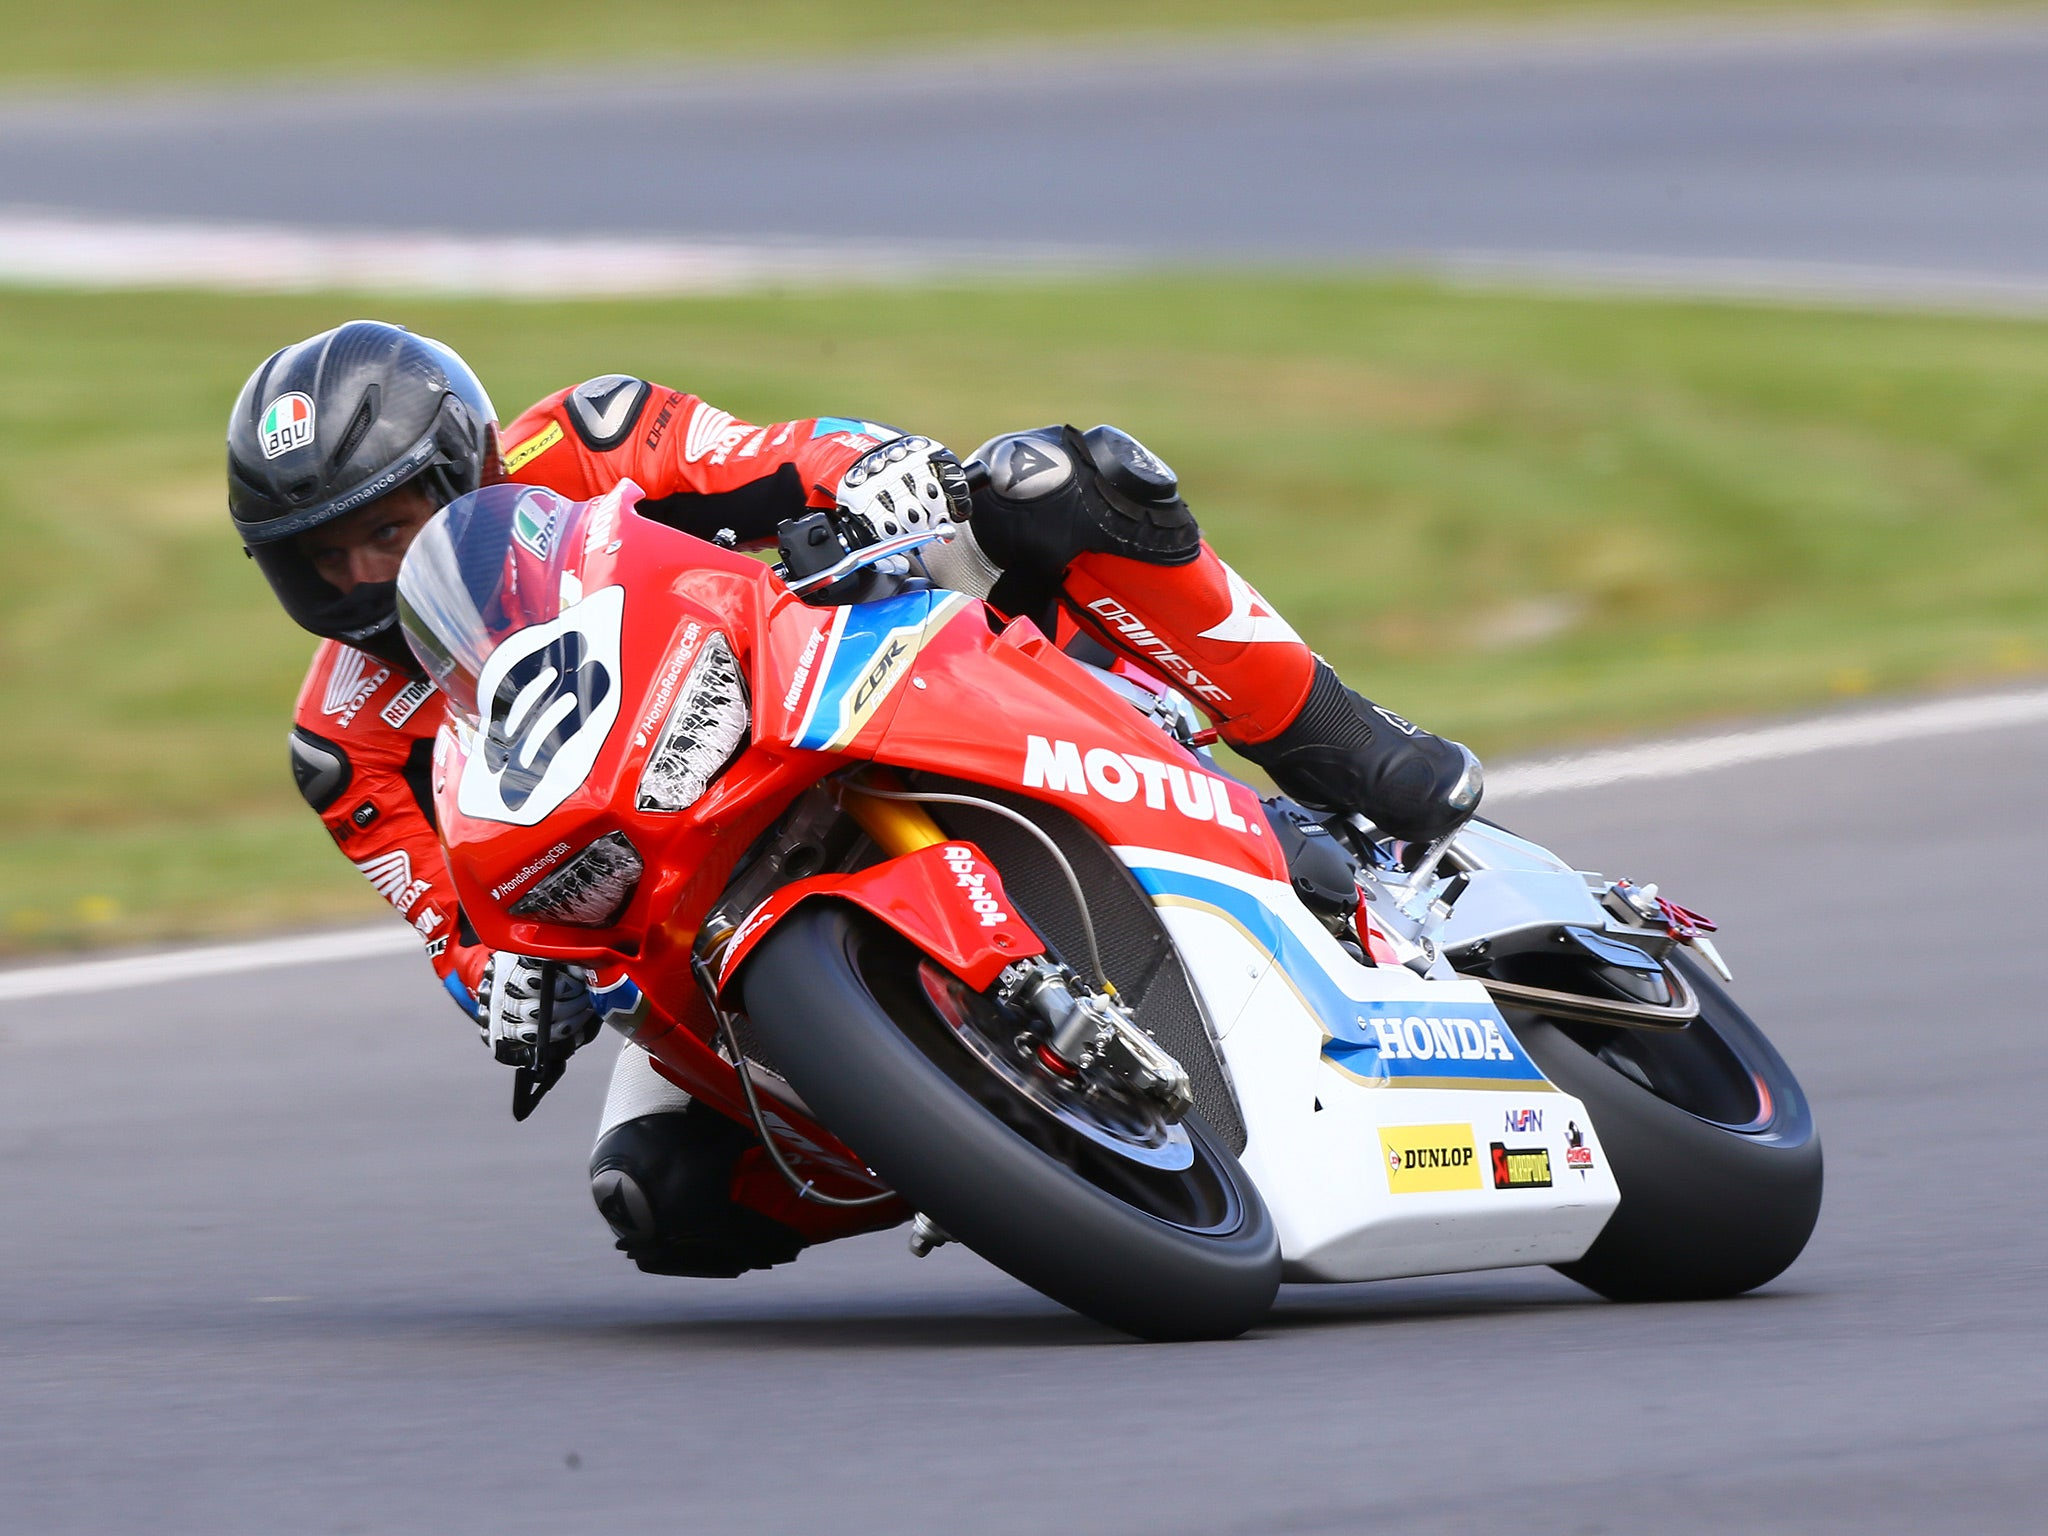 guy martin clarifies retirement reports after leaving honda following nightmare return to road. Black Bedroom Furniture Sets. Home Design Ideas